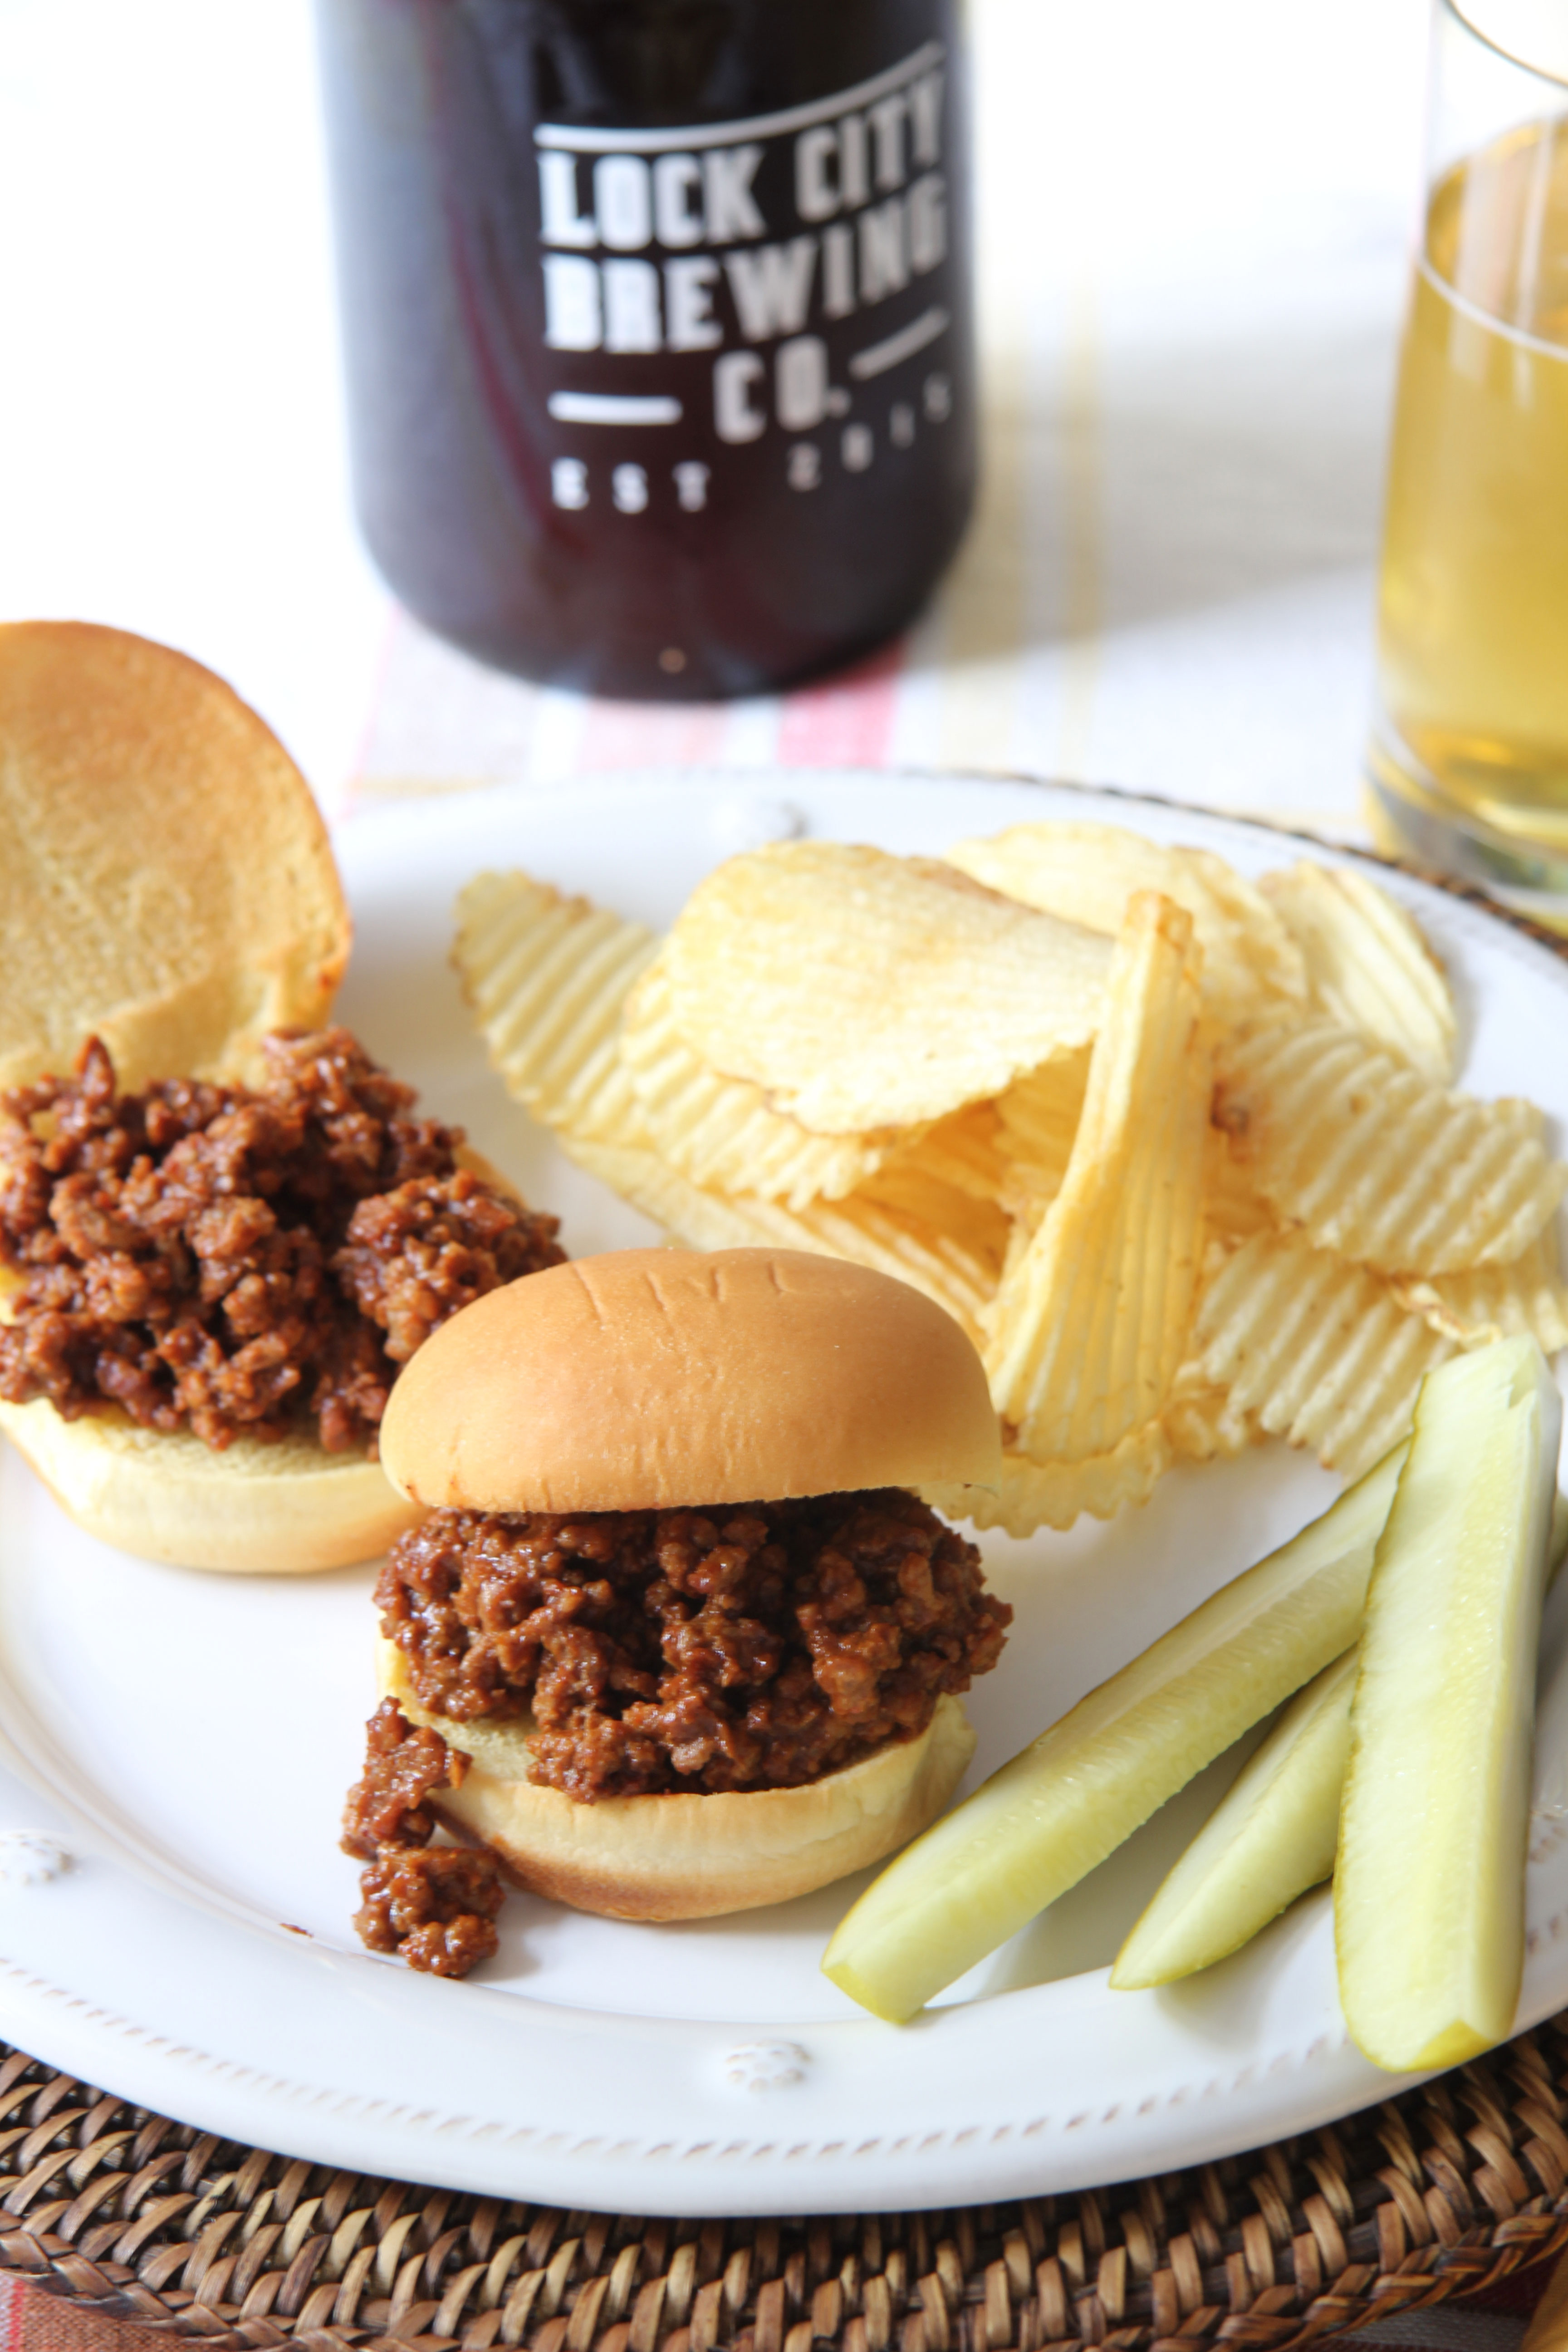 Ridgely Brode serves up delicious Sloppy Joe's made with spices from a local Connecticut source on her blog, Ridgely's Radar.